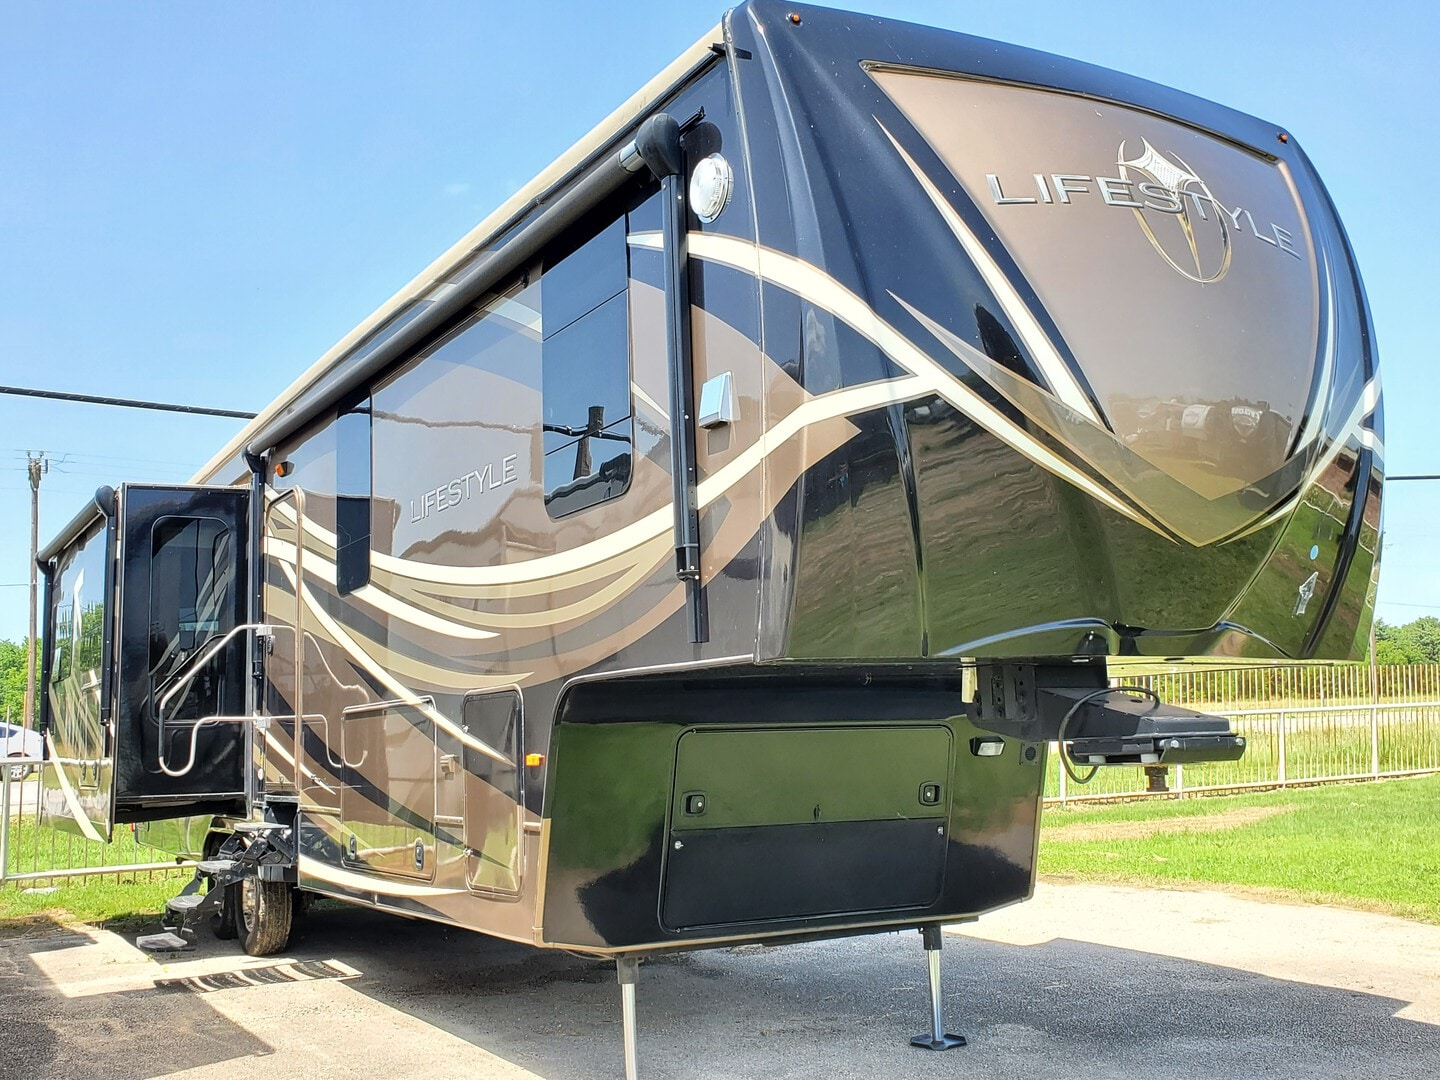 Used, 2015, Lifestyle Luxury RV, LS38RS, Fifth Wheels